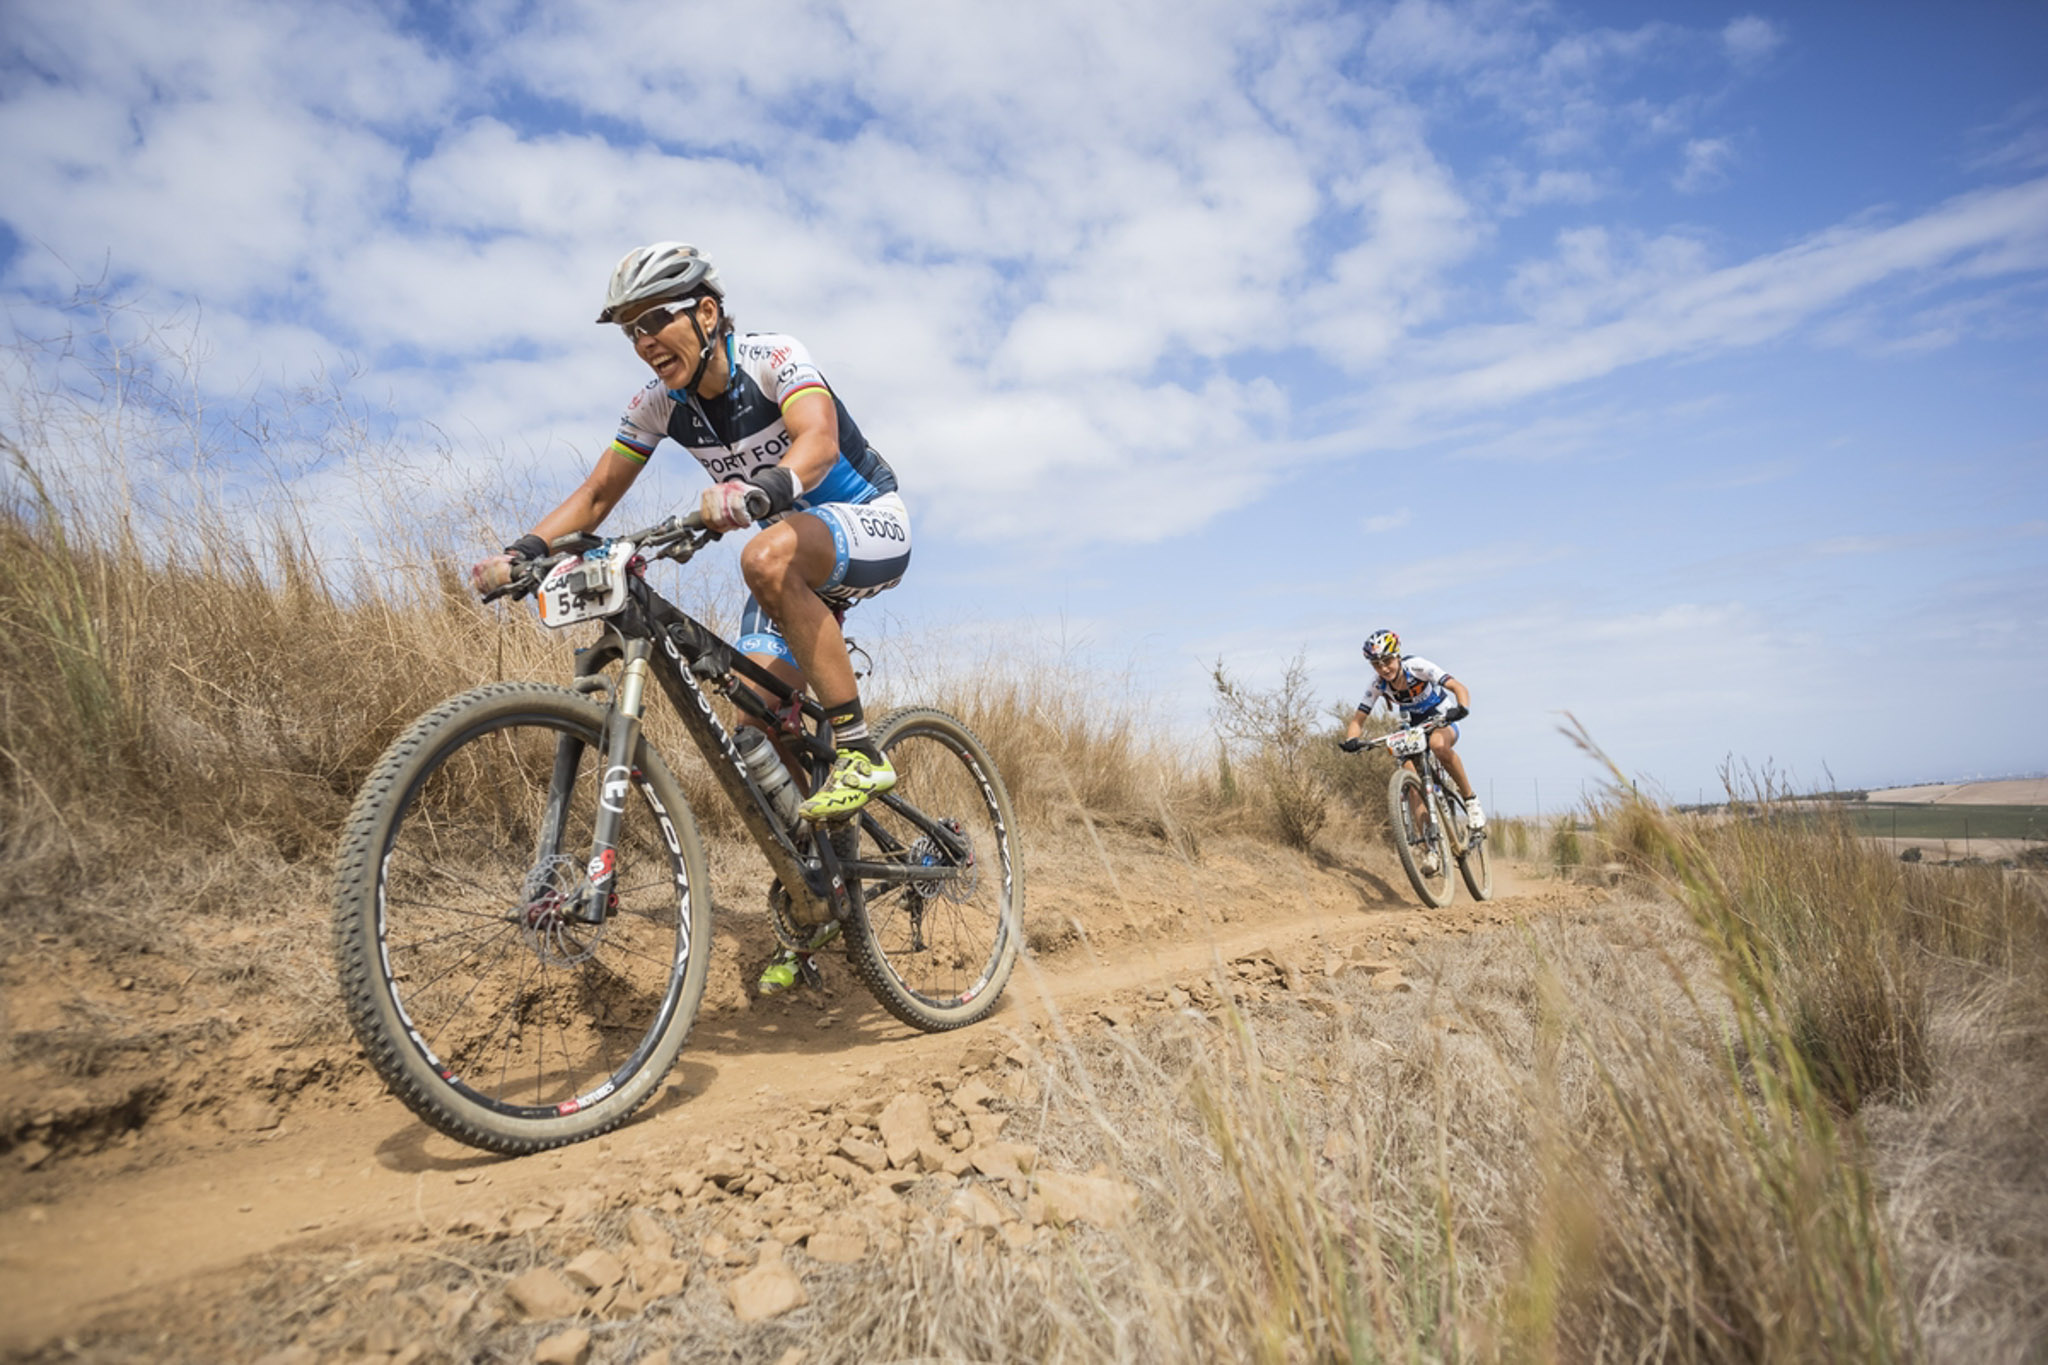 Sabine Spitz and Yana Belomoina during the final stage (stage 7) of the 2016 Absa Cape Epic Mountain Bike stage race from Boschendal in Stellenbosch to Meerendal Wine Estate in Durbanville, South Africa on the 20th March 2016 Photo by Dominic Barnardt/Cape Epic/SPORTZPICS PLEASE ENSURE THE APPROPRIATE CREDIT IS GIVEN TO THE PHOTOGRAPHER AND SPORTZPICS ALONG WITH THE ABSA CAPE EPIC ace2016